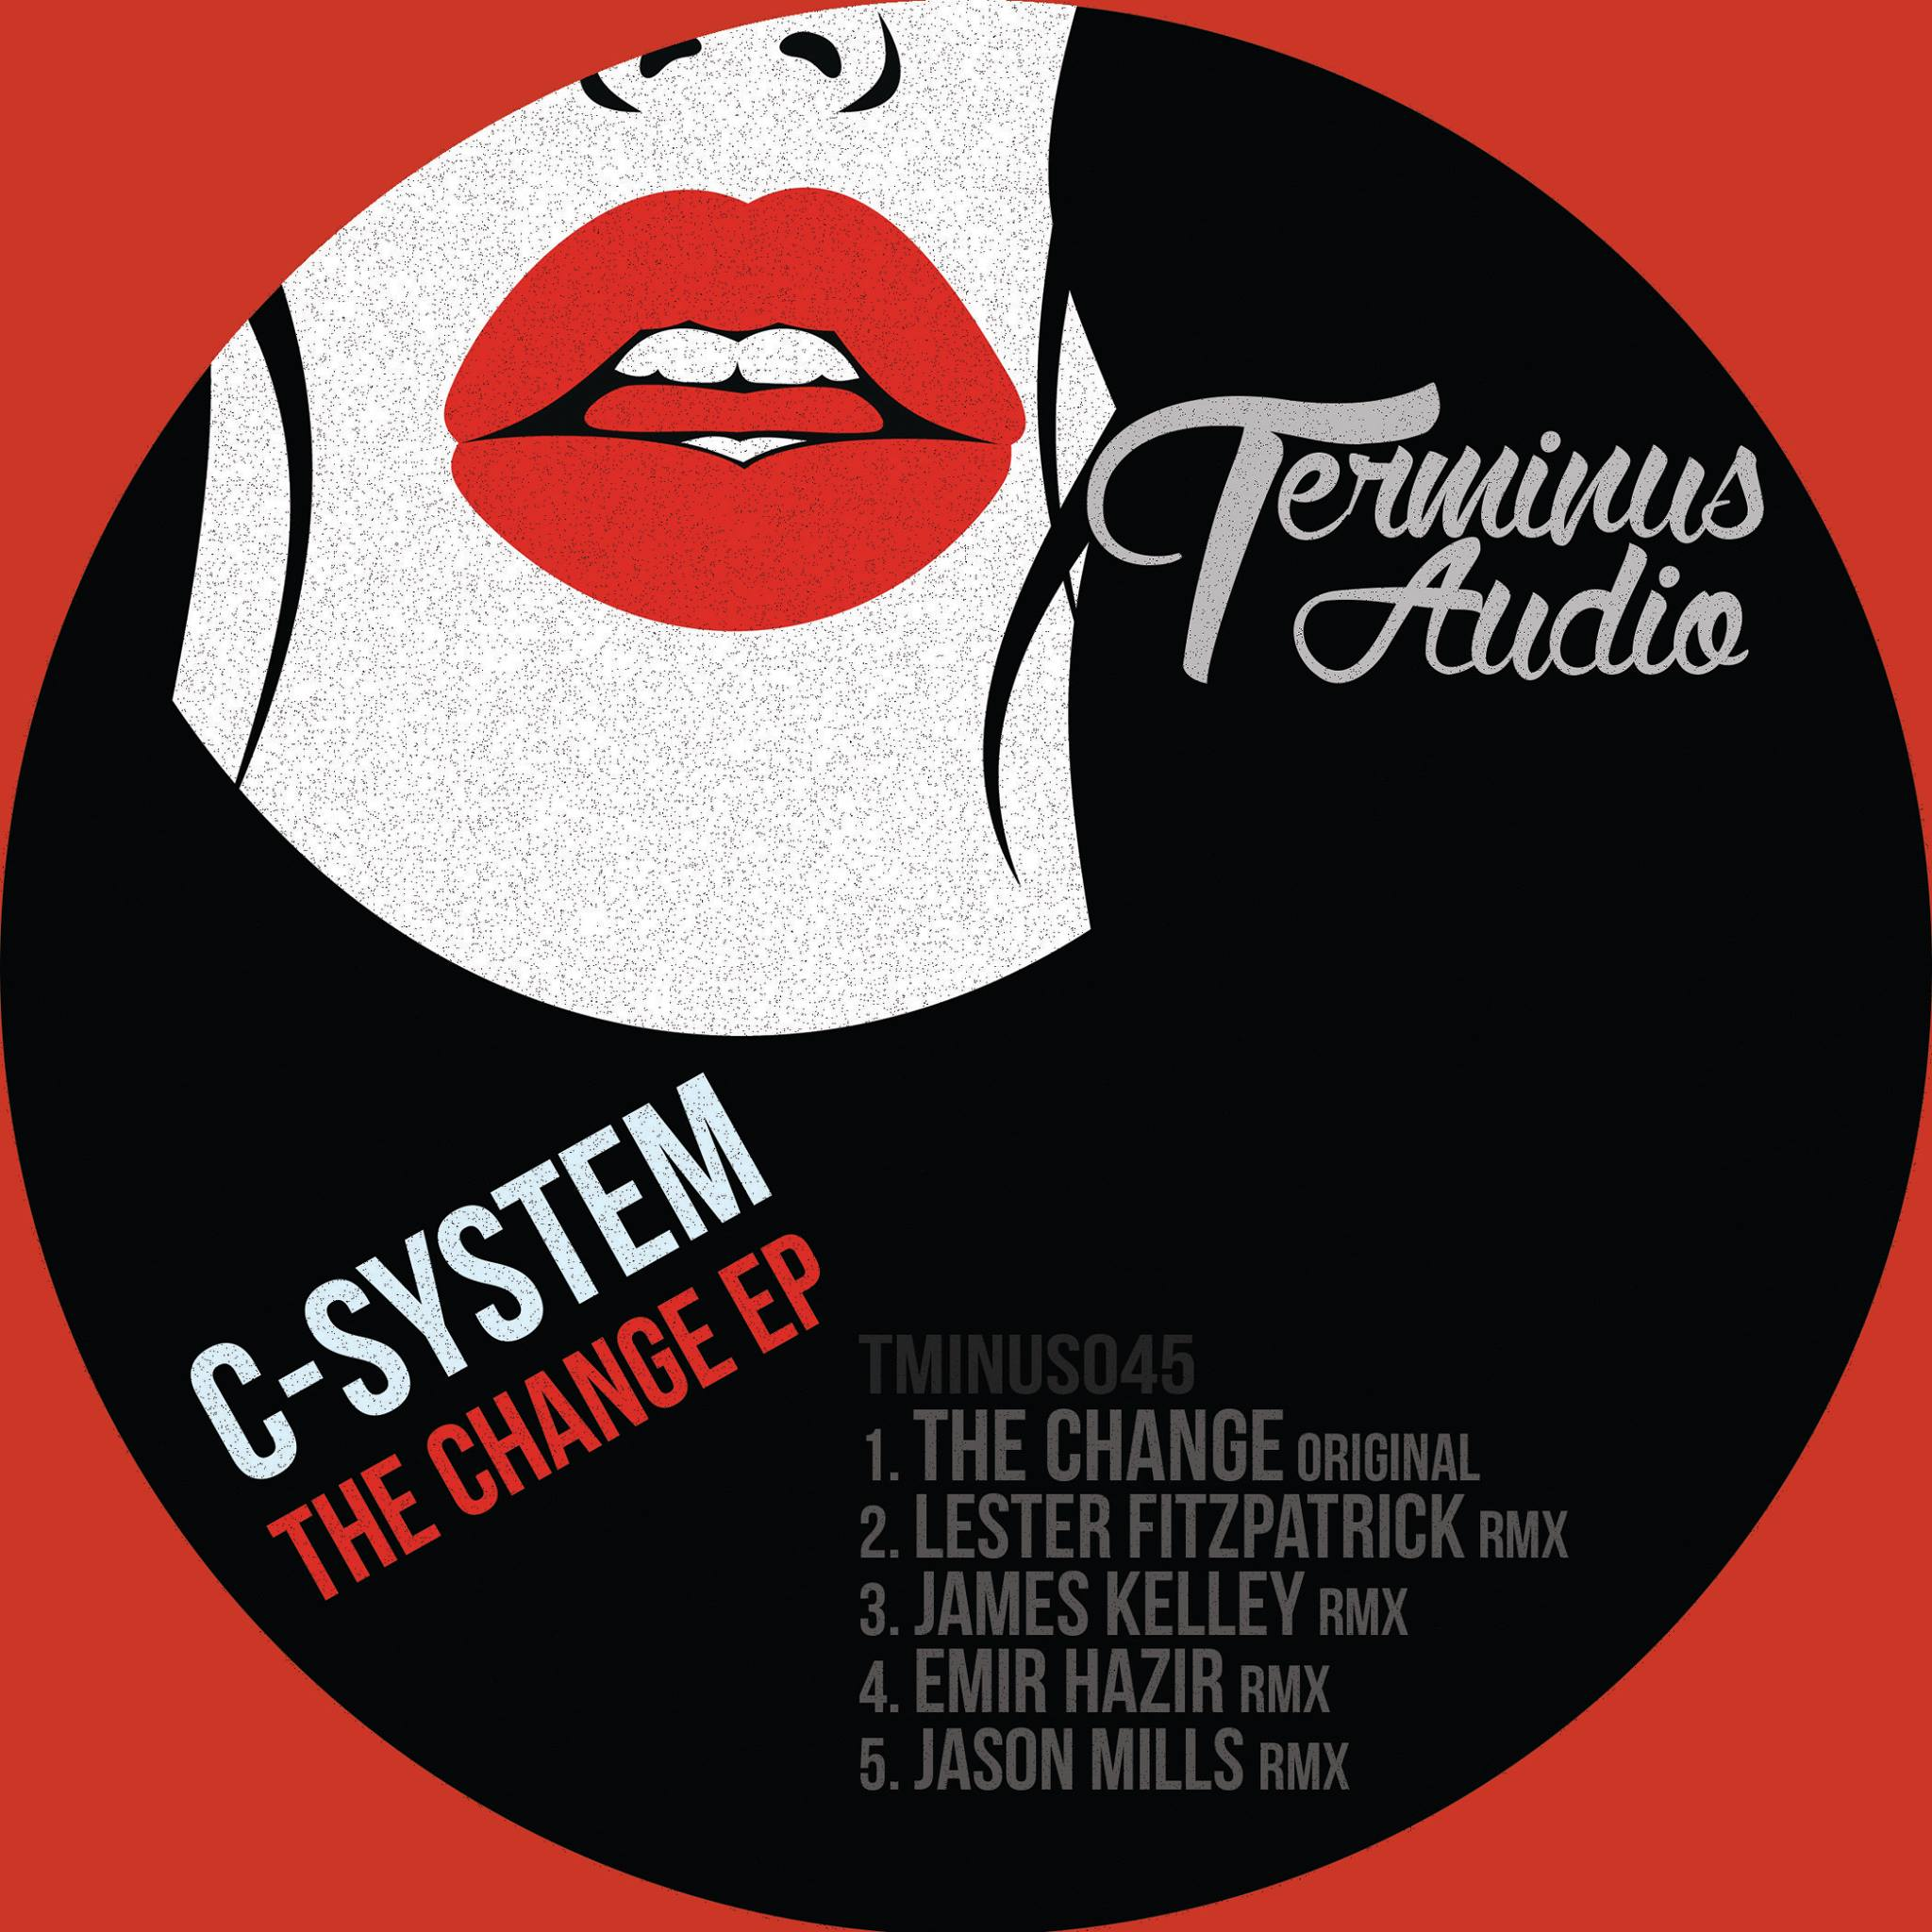 James Kelley's Remix for C-System